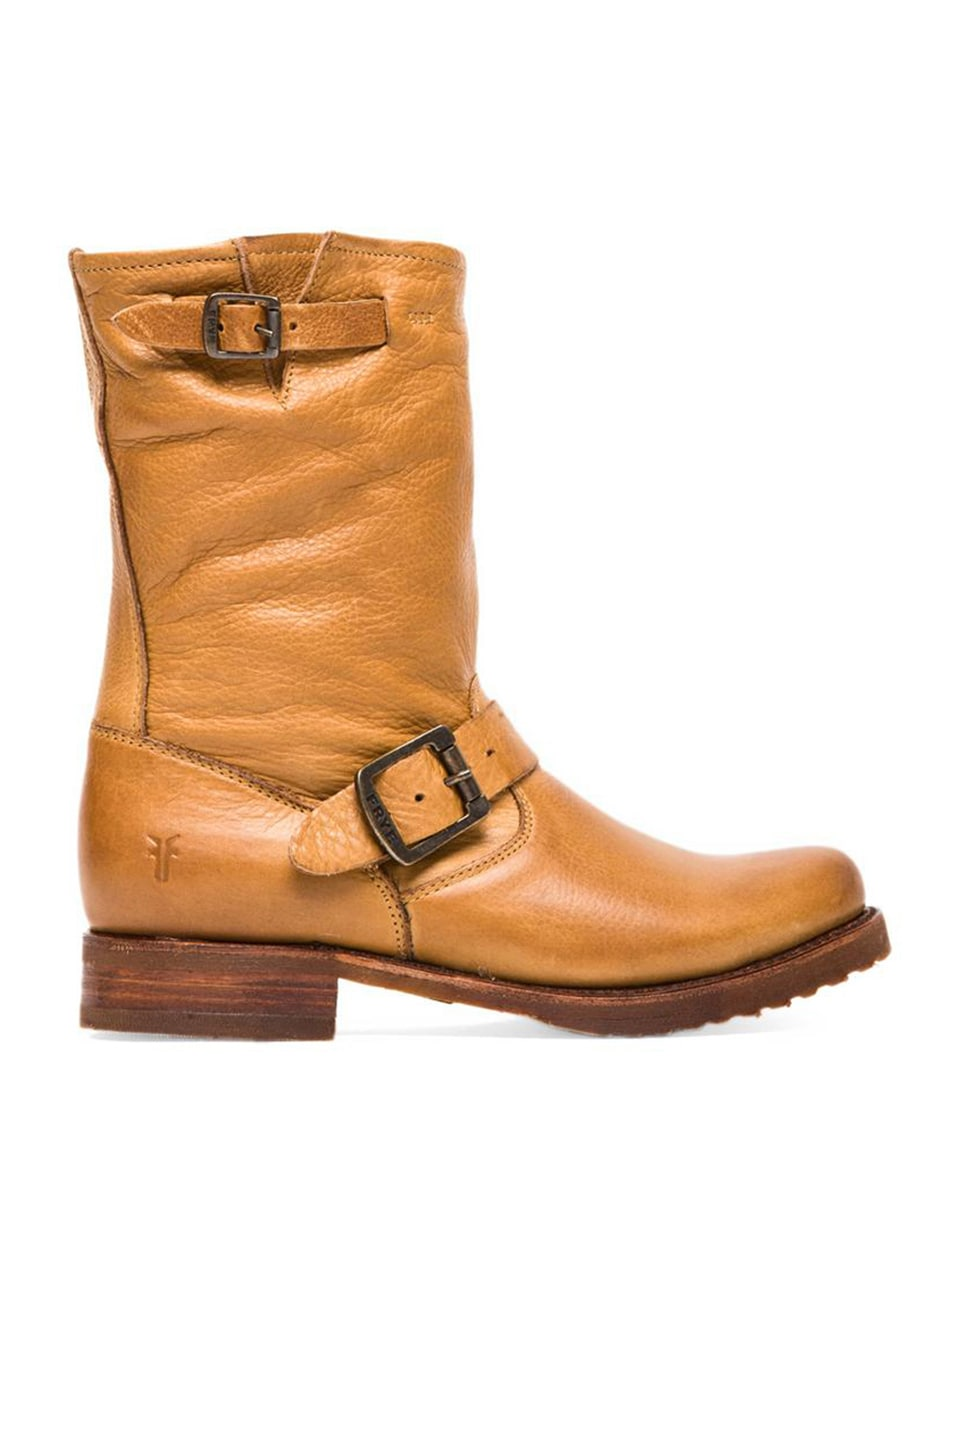 Frye Veronica Shortie in Camel